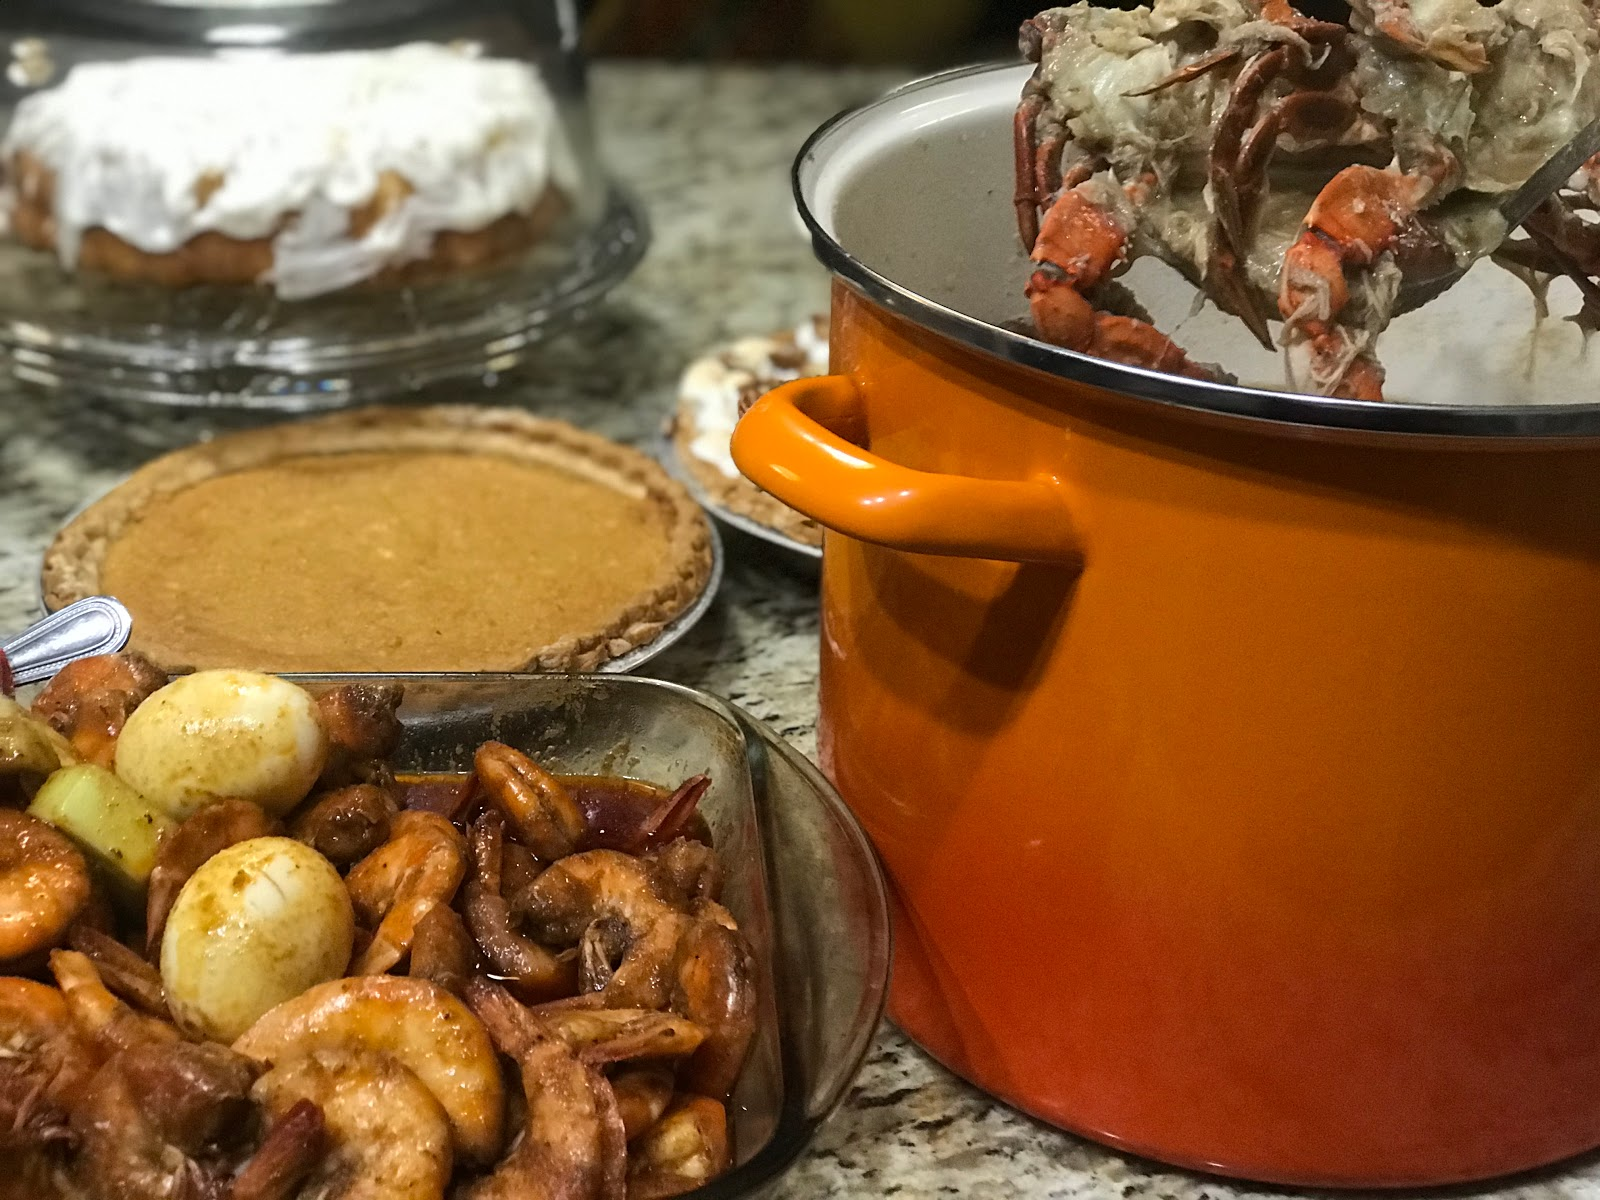 Cakes, pies and shrimp on the table for Thanksgiving: The joyful list